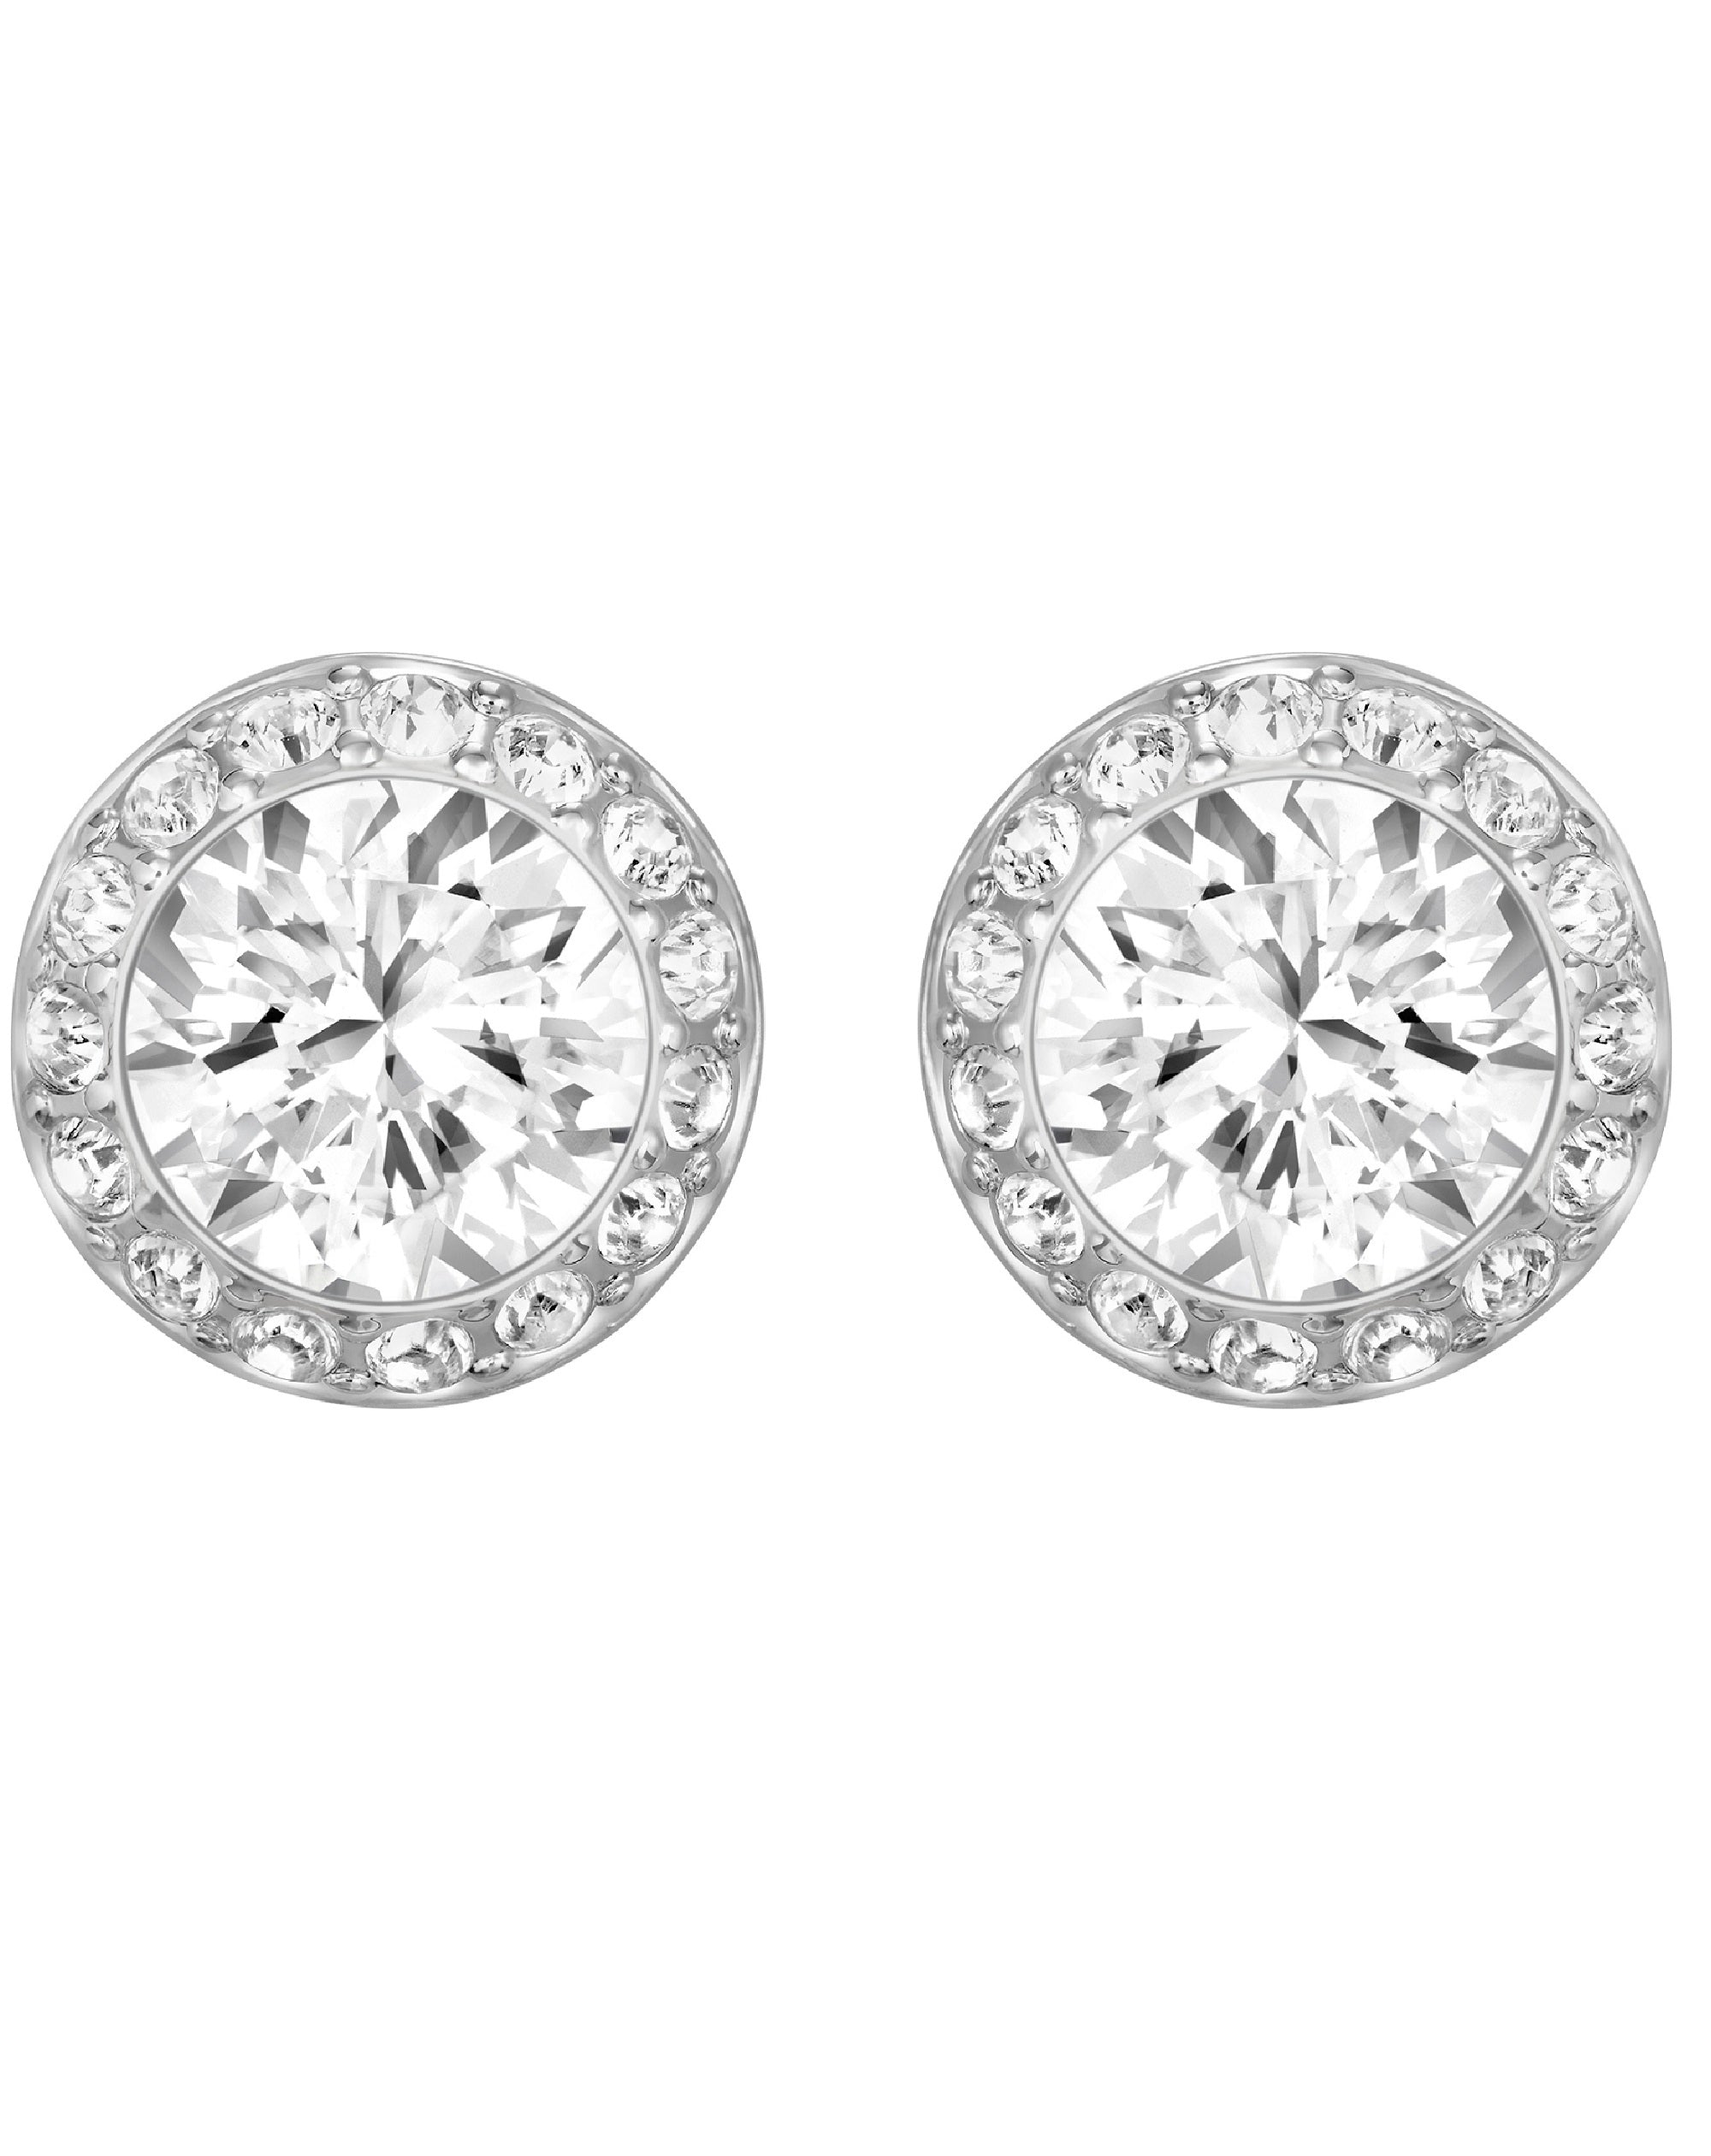 1081942 Angelic White Jewelry Earrings